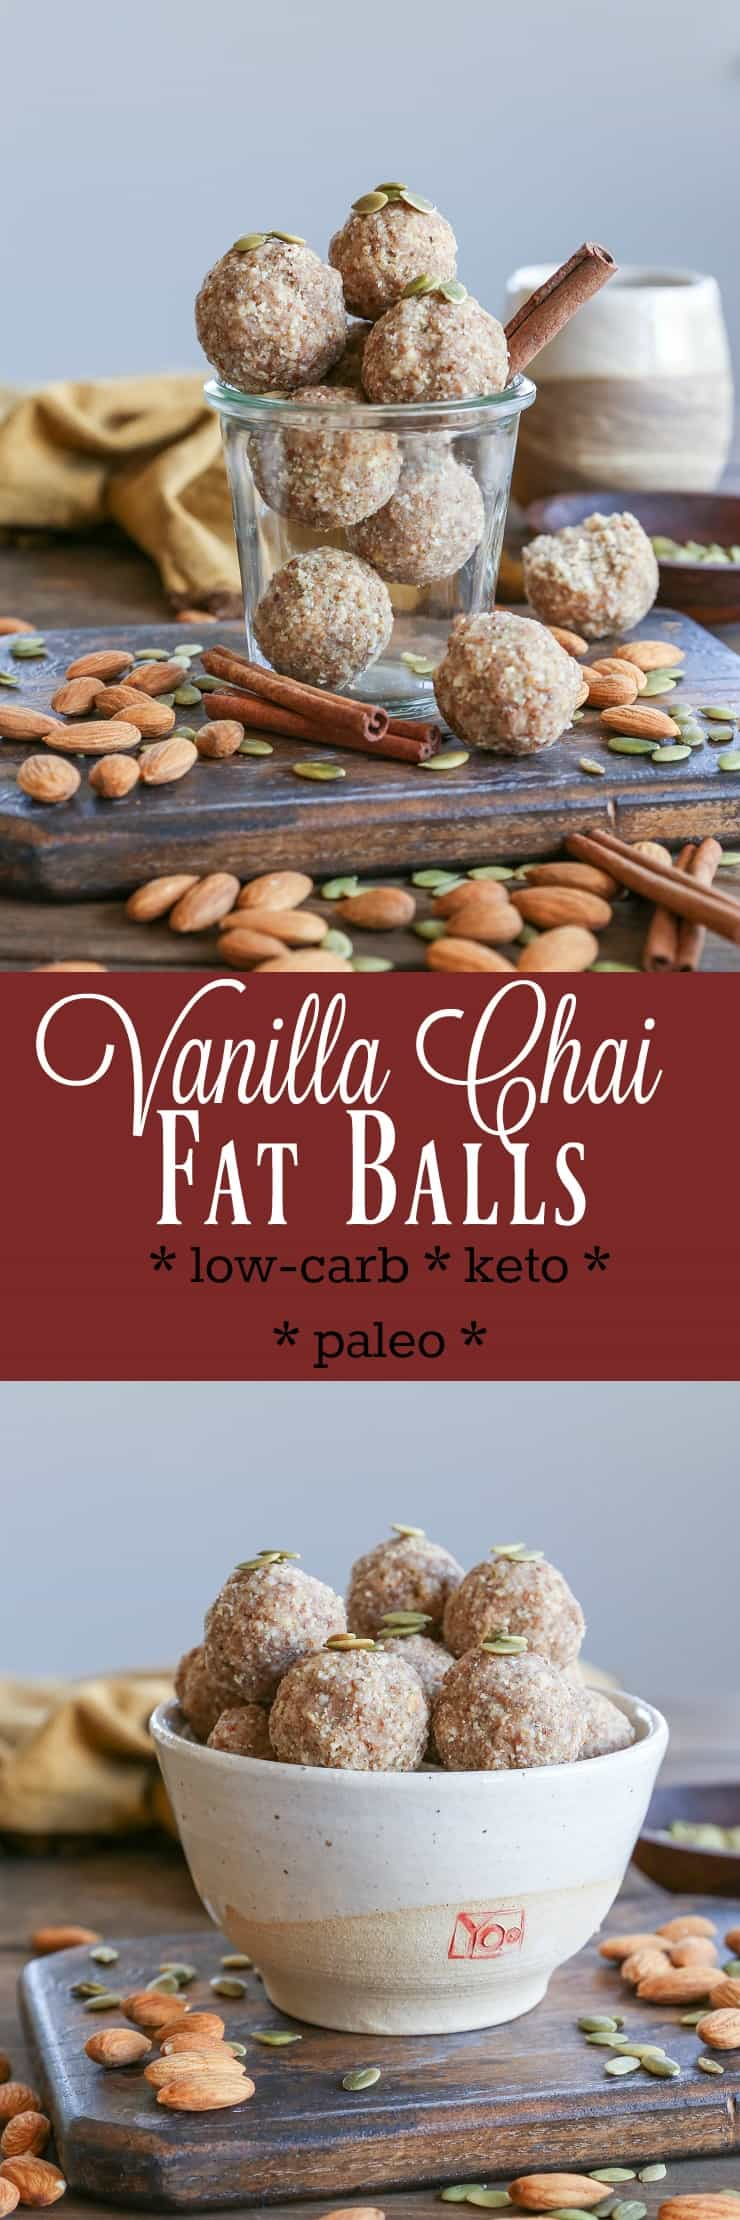 Vanilla Chai Fat Balls - a clean low-carb keto snack made with nuts, seeds, coconut butter, and pure maple syrup #keto #paleo #glutenfree